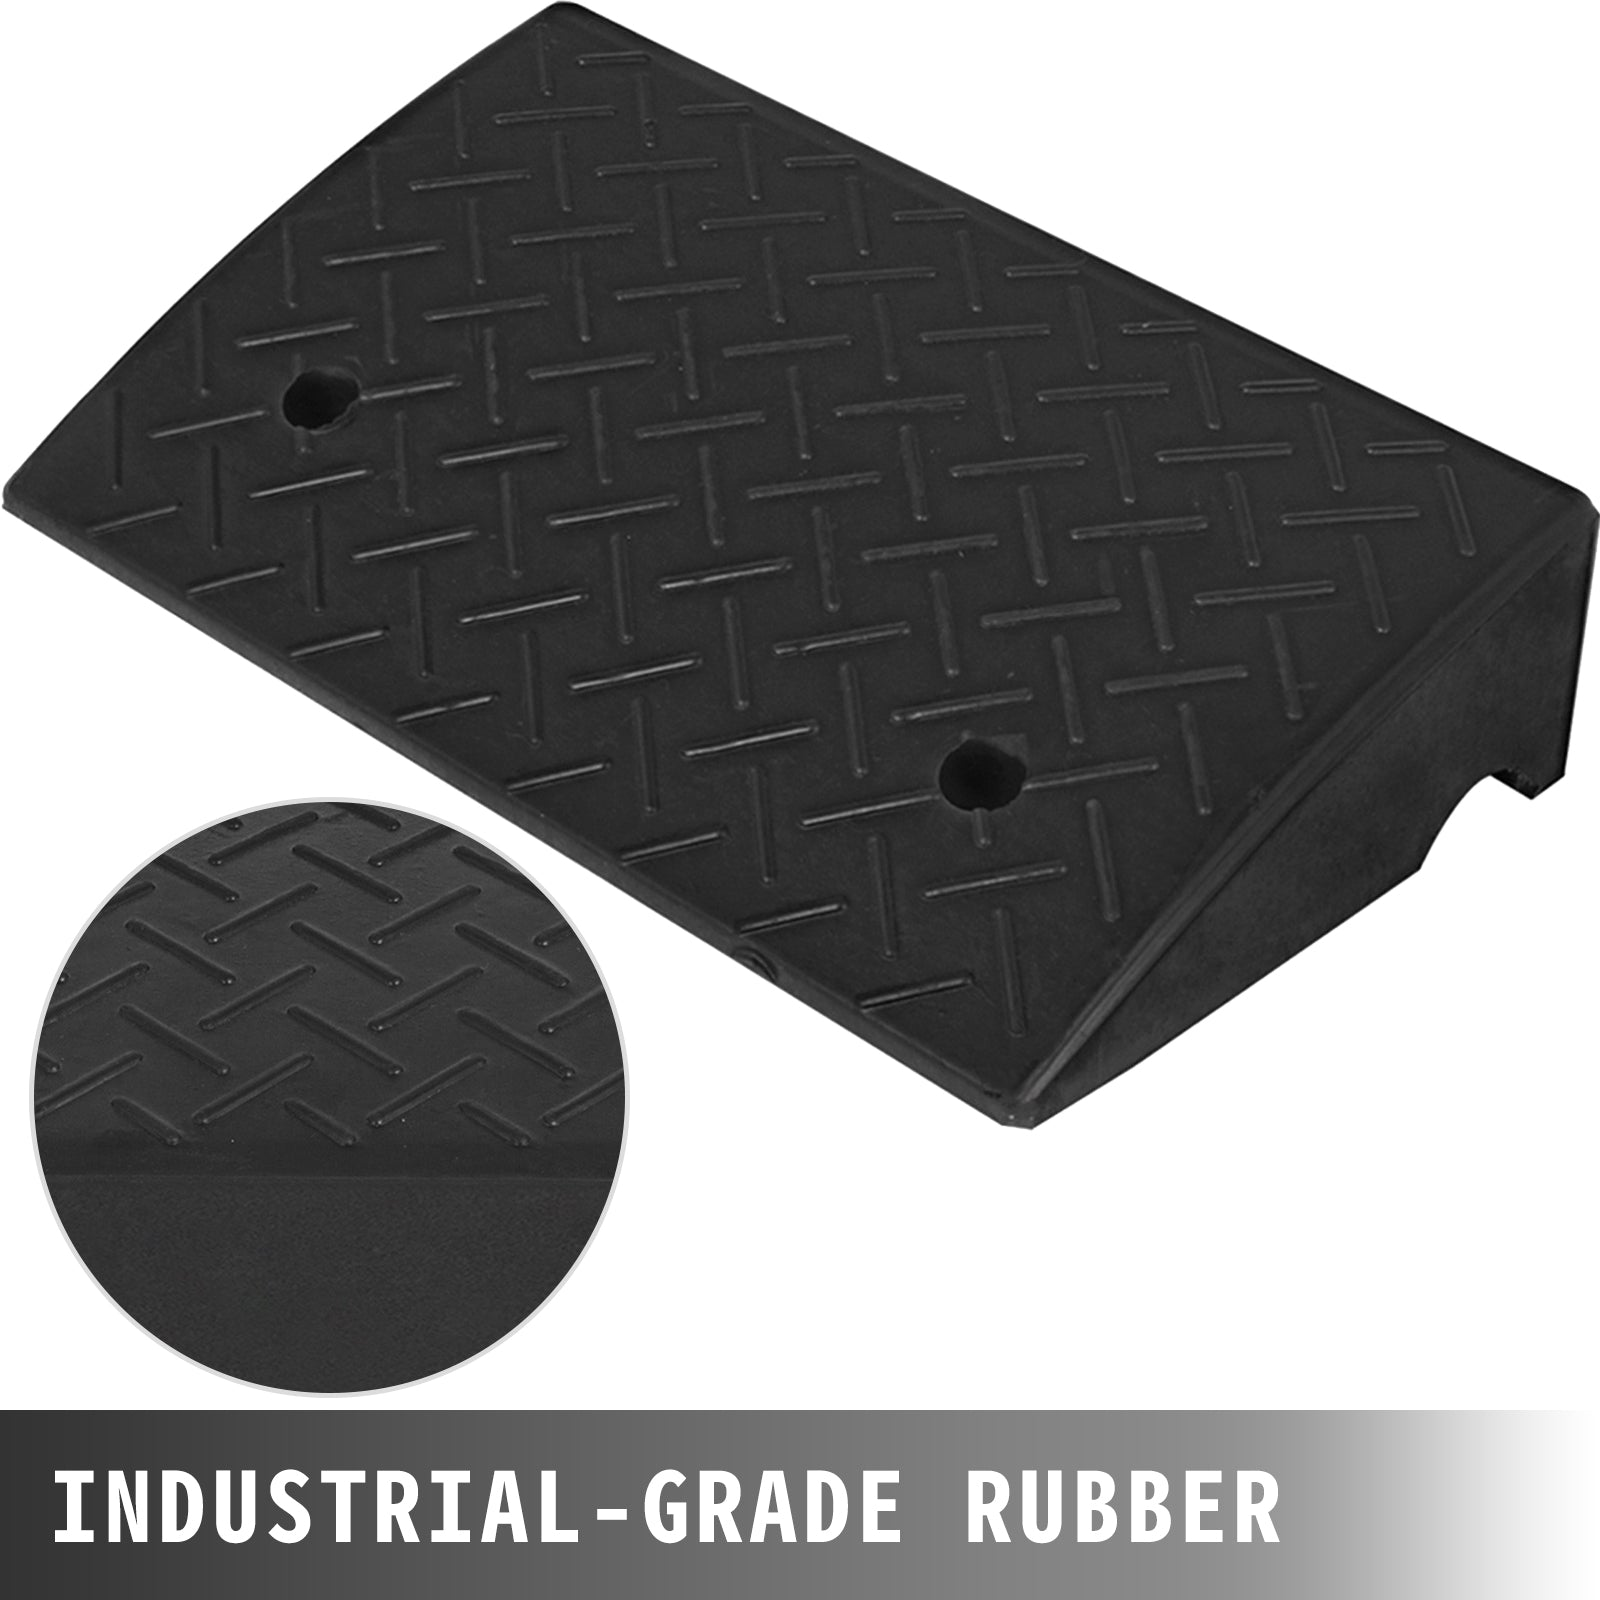 15400lb Rubber Curb Ramp 19''x12.6''x5'' Large Capacity Durable Warehouse